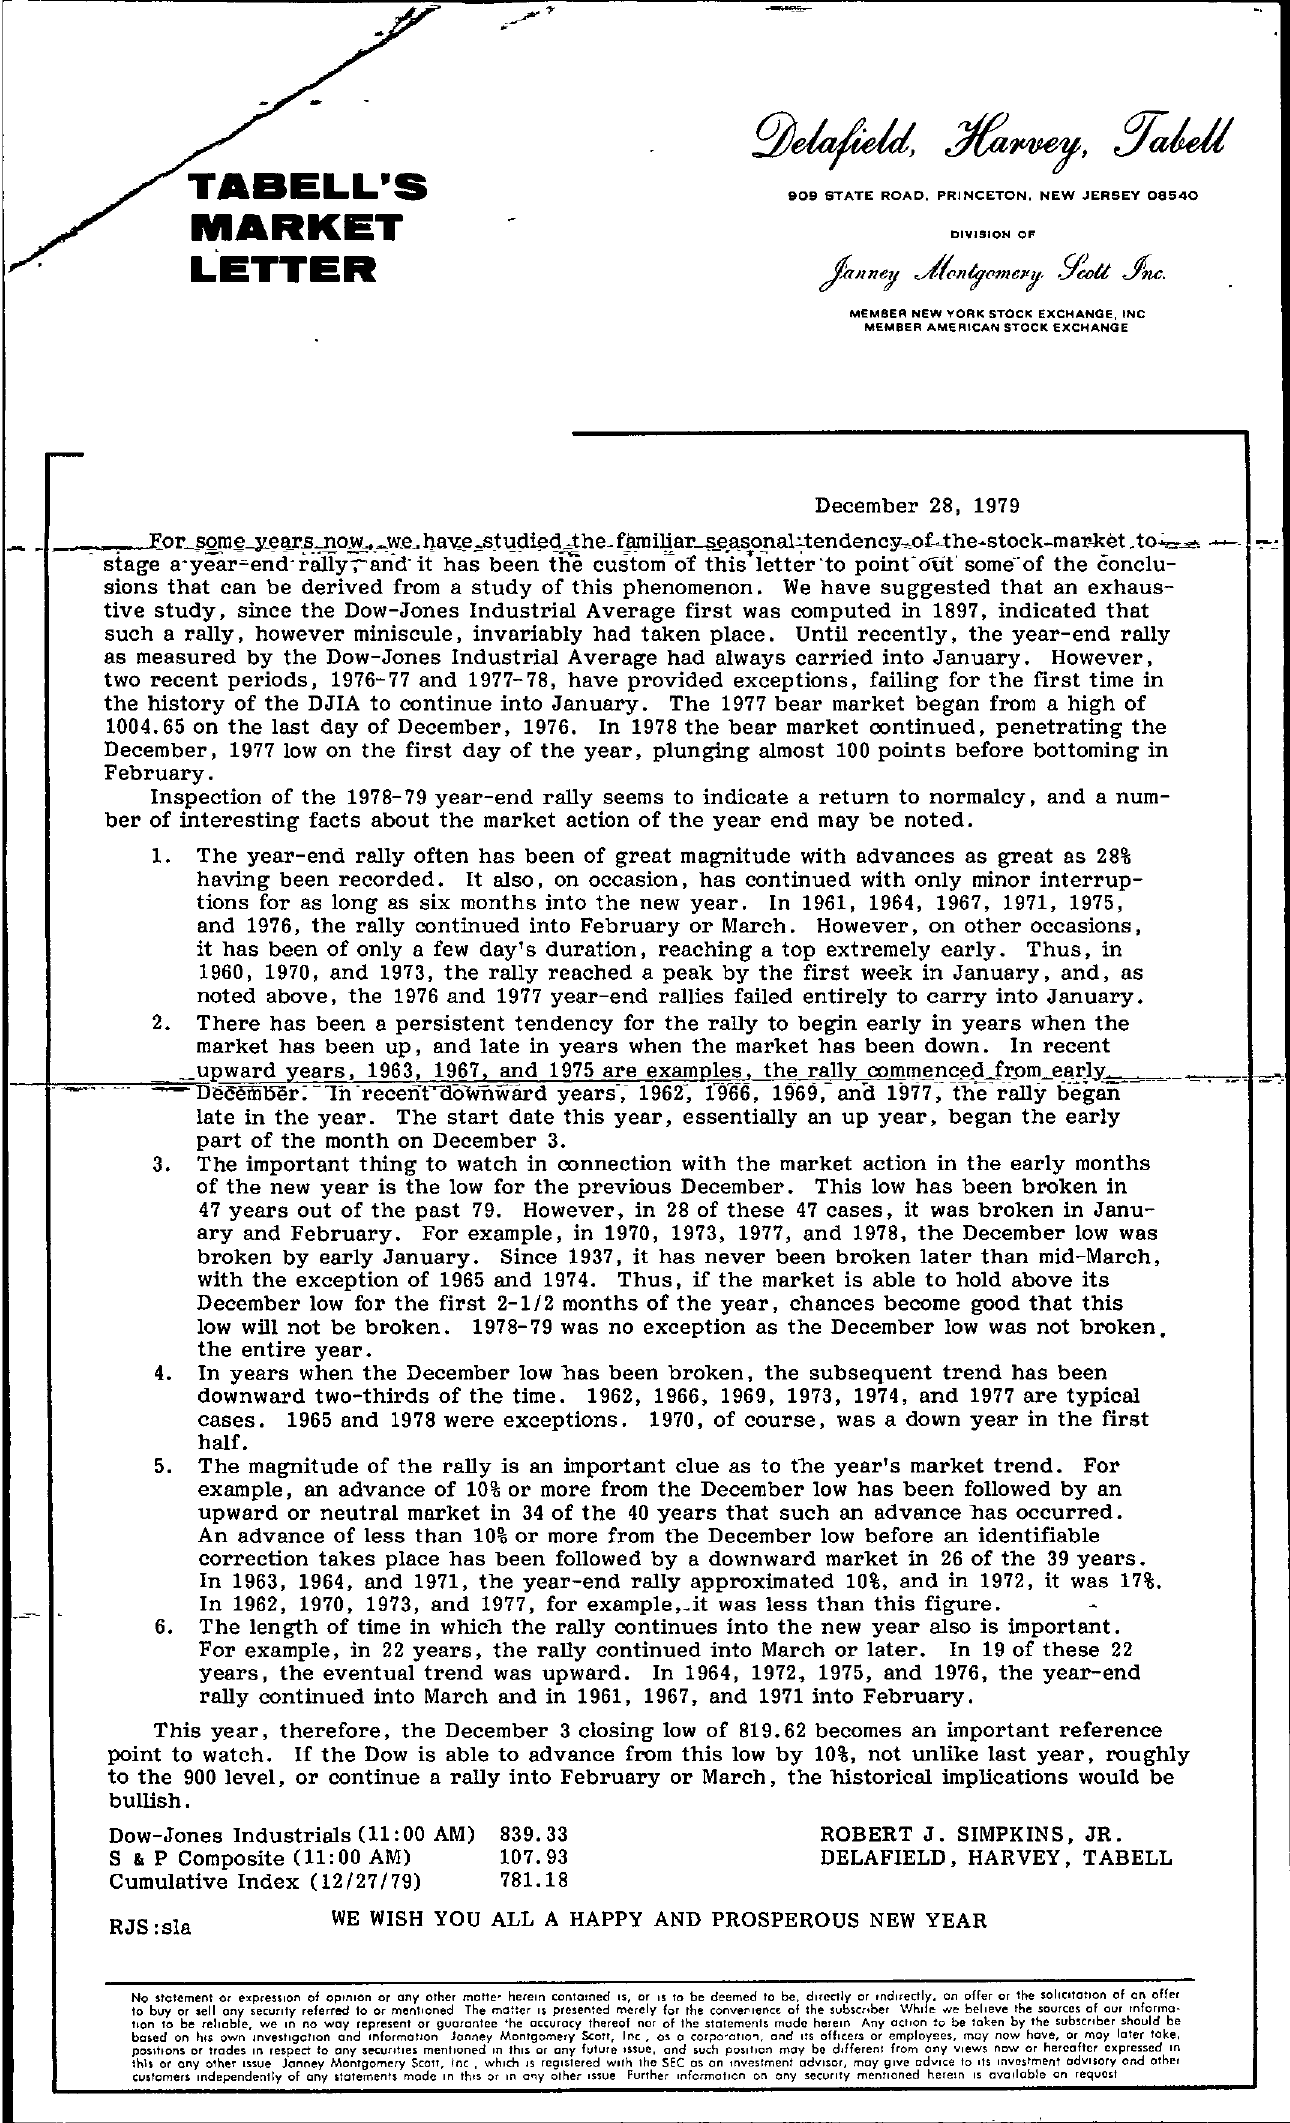 Tabell's Market Letter - December 28, 1979 page 1